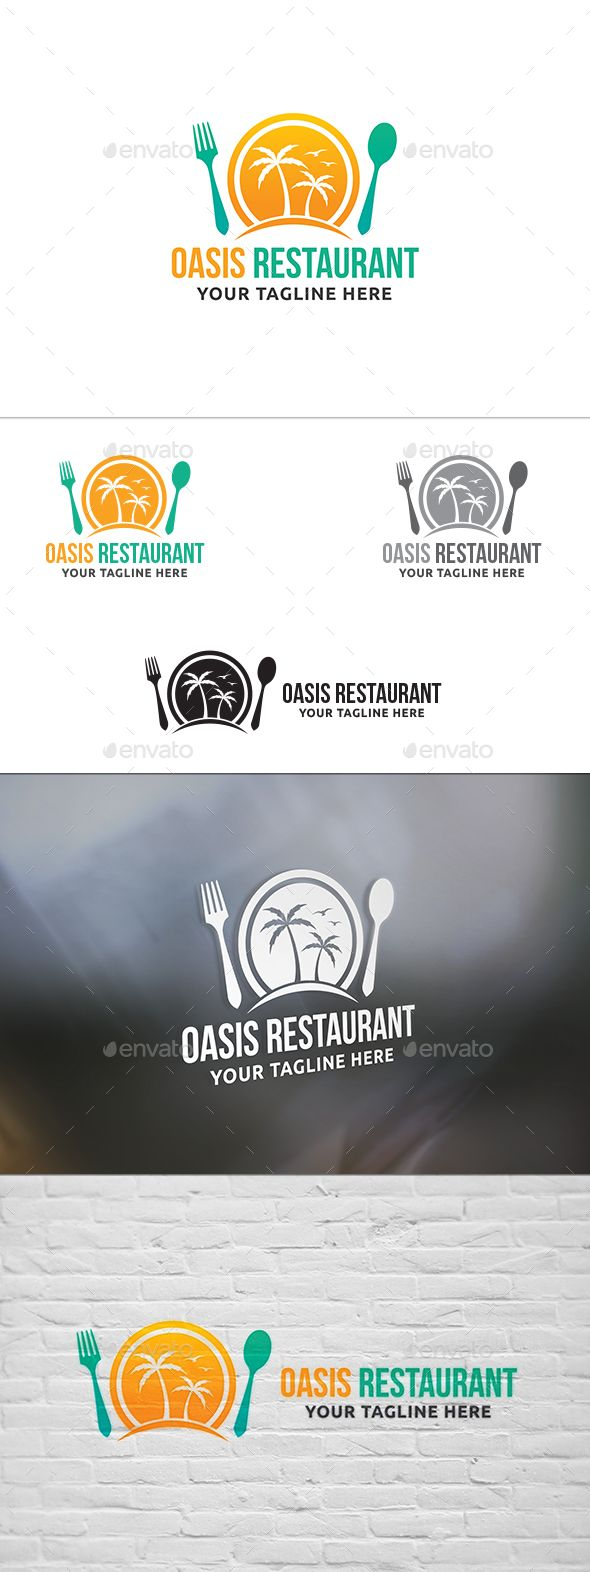 Oasis Restaurant Logo,accommodation, arabic food, beach, beach food, branding, creative, delicious, desert, food oasis, food point, fork, hotel, modern, oasis logo, oasis restaurant, palm, Palm Island, relax, Restaurant logo, sea, spoon, travel, tropical coconut tree, vacation